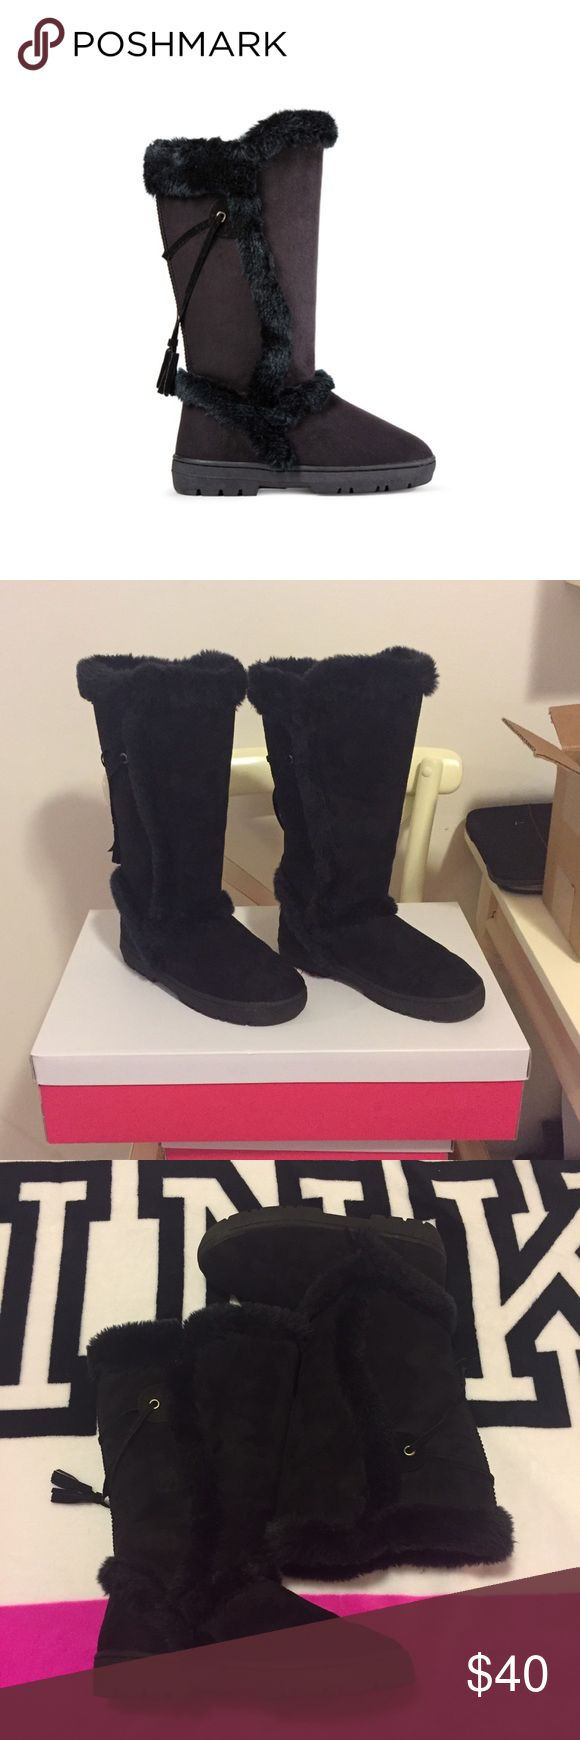 💕ANCHORAGE FUZZY BOOTS * COMPLETELY SOLD OUT  * Description: They've stolen our heart and we've given them sole! Take on the terrain in these chic, fur trimmed Fuzzies. Includes rugged tread for added grip. Faux suede.  * In perfect condition; only worn 2 or 3 times * ⚠️Please note that since these come with their original box & that they are stiff (meaning they don't bend) I would have to purchase a bigger box than USPS carries. If you don't wish to have the original box let me know please…